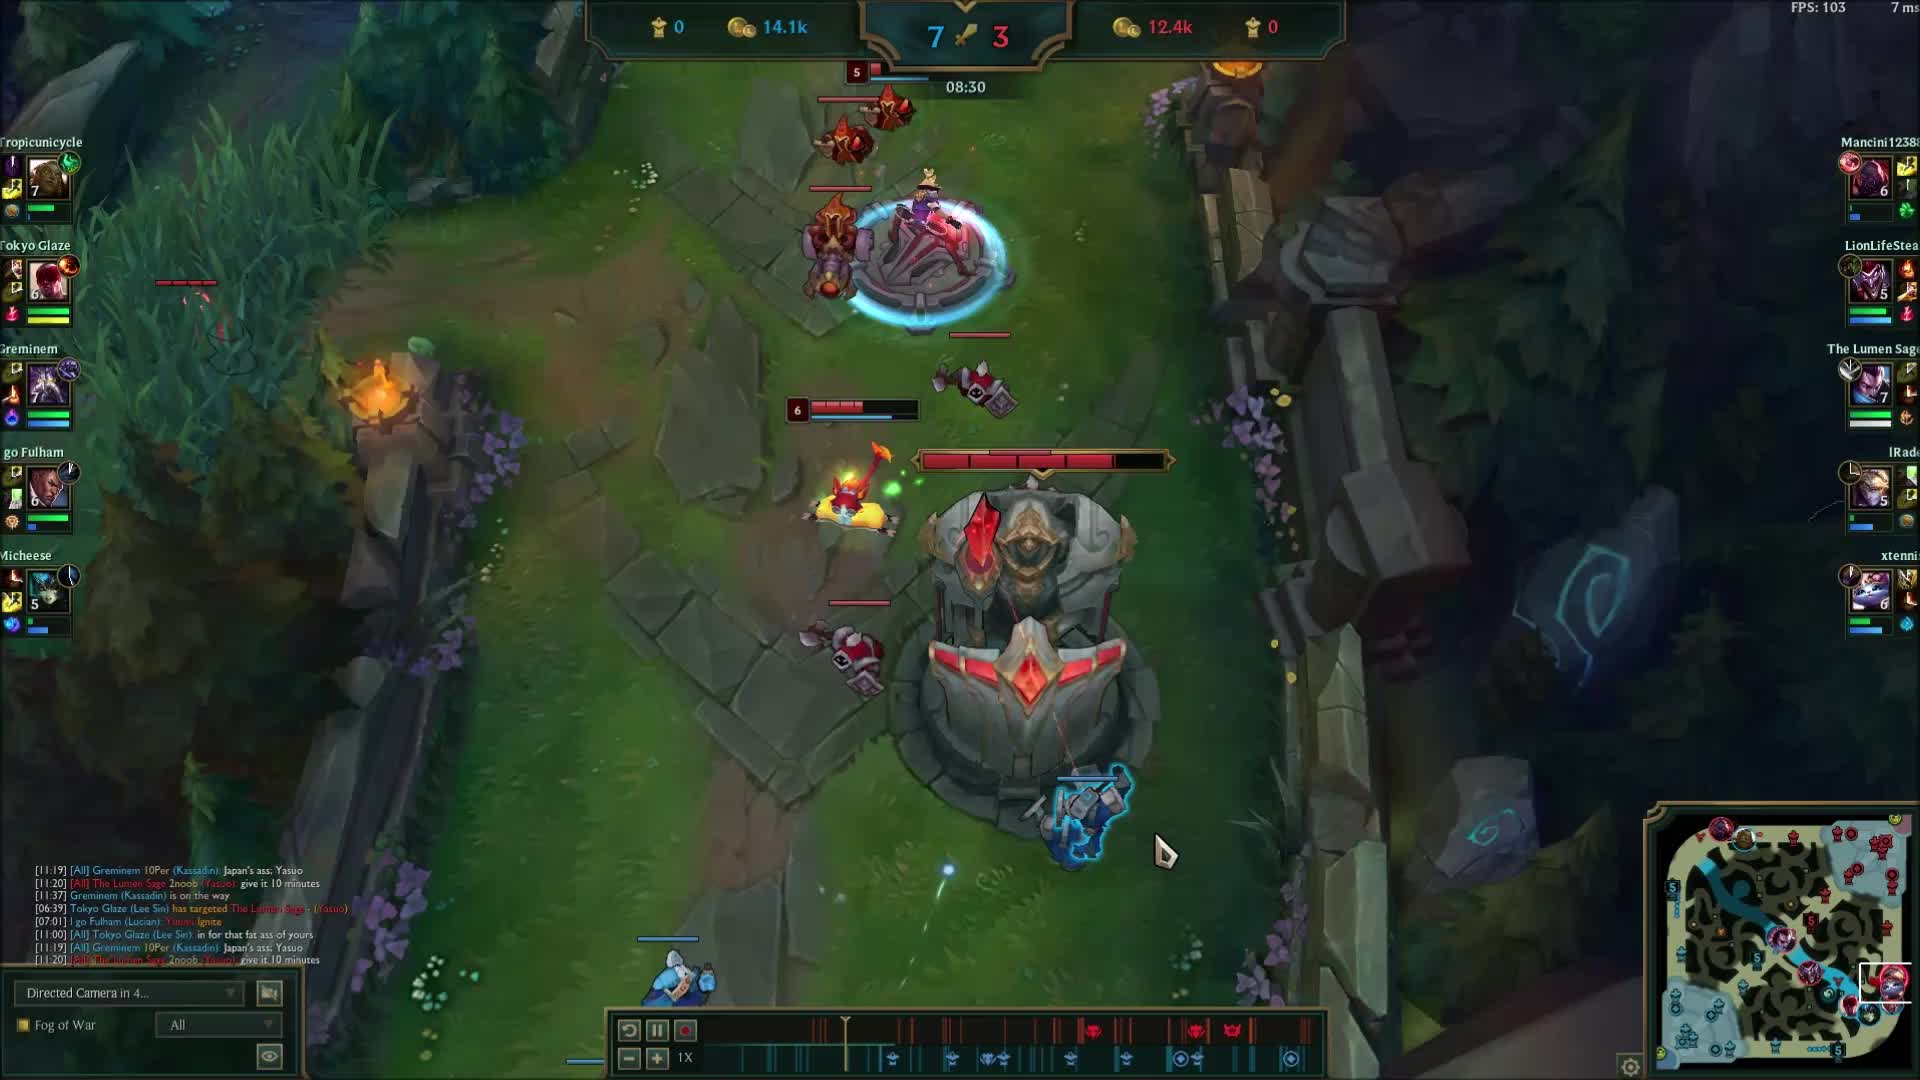 leagueoflegends, synergised GIFs